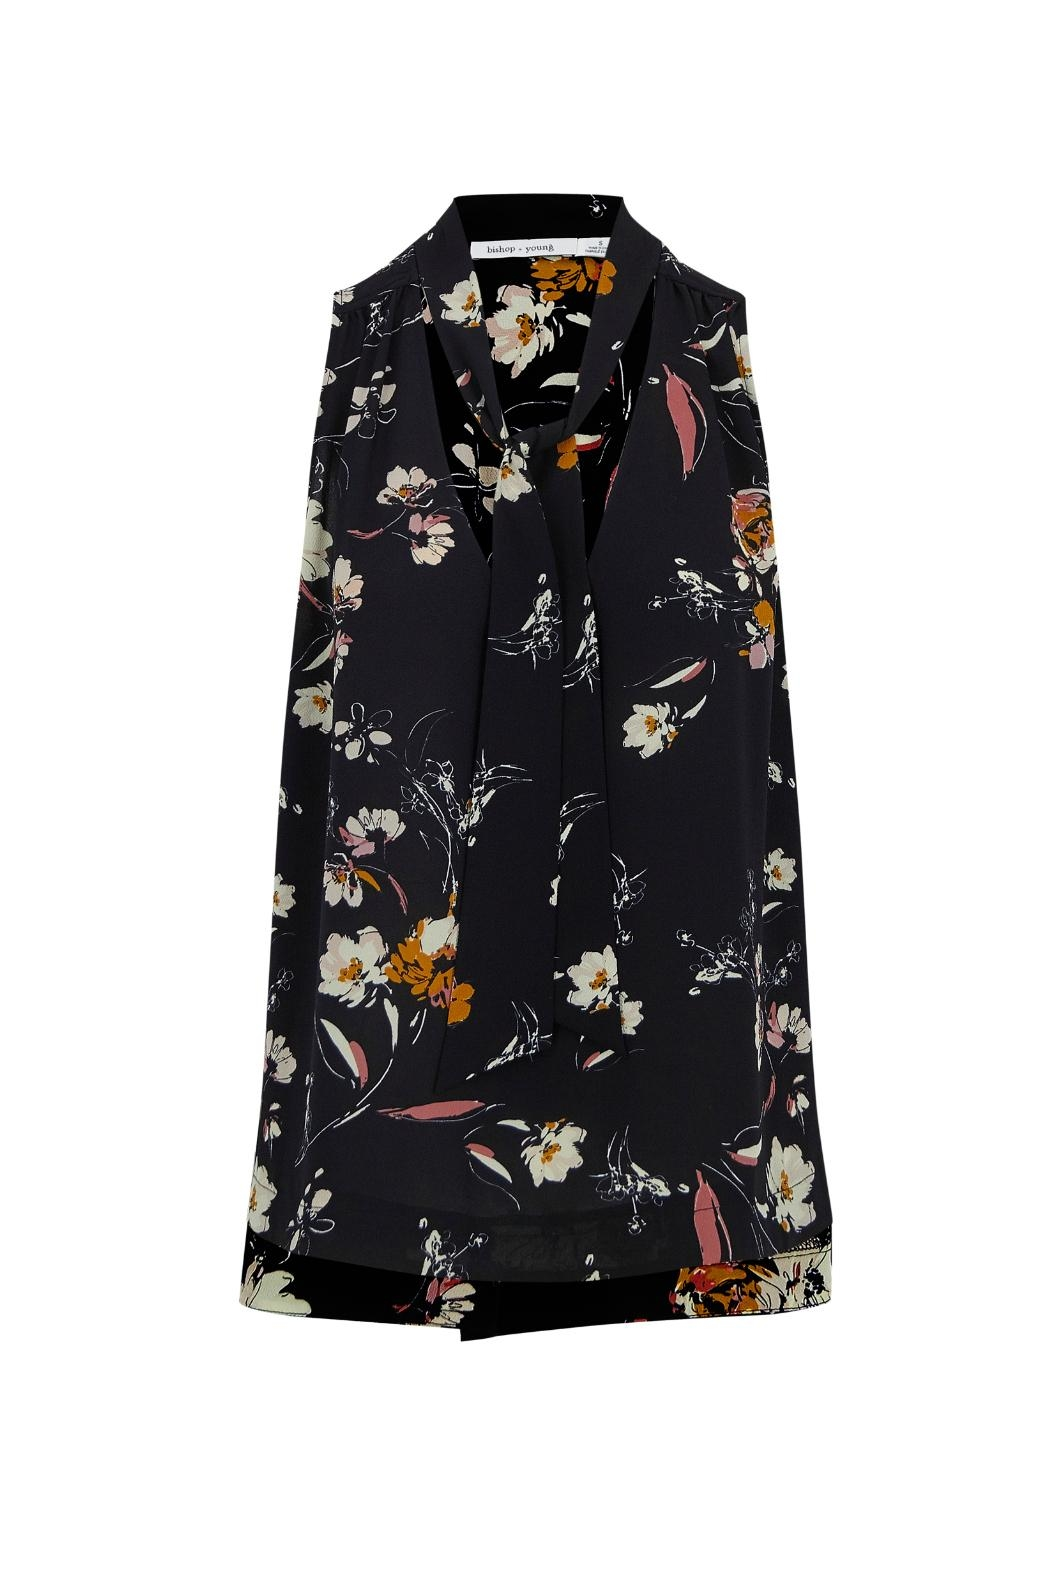 Bishop + Young Floral Tie Neck Top - Main Image